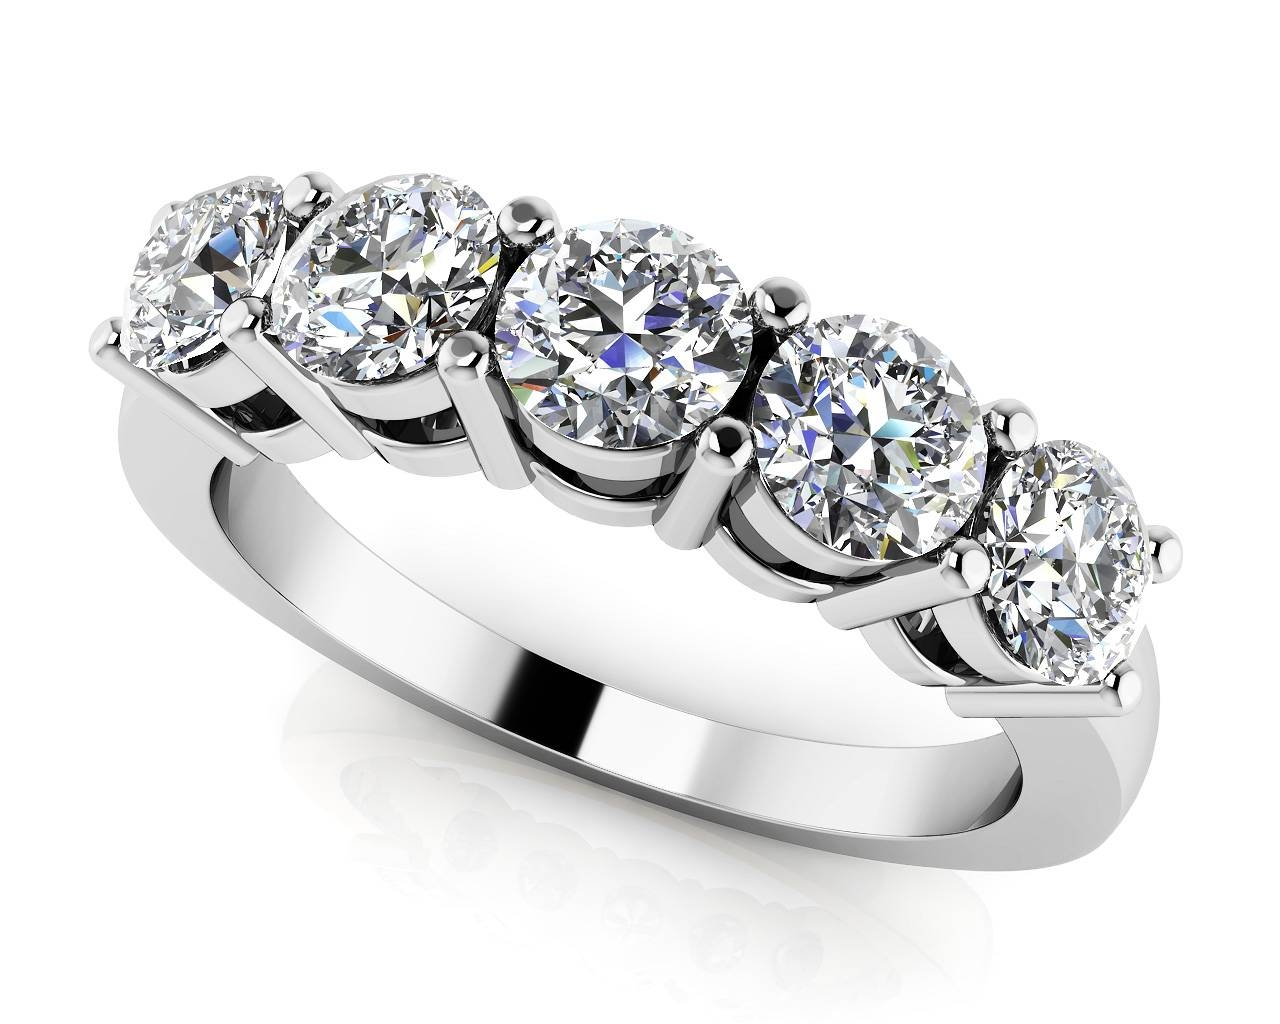 Design Your Own Diamond Anniversary Ring & Eternity Ring Throughout Most Current Anniversary Rings For Women (View 8 of 25)